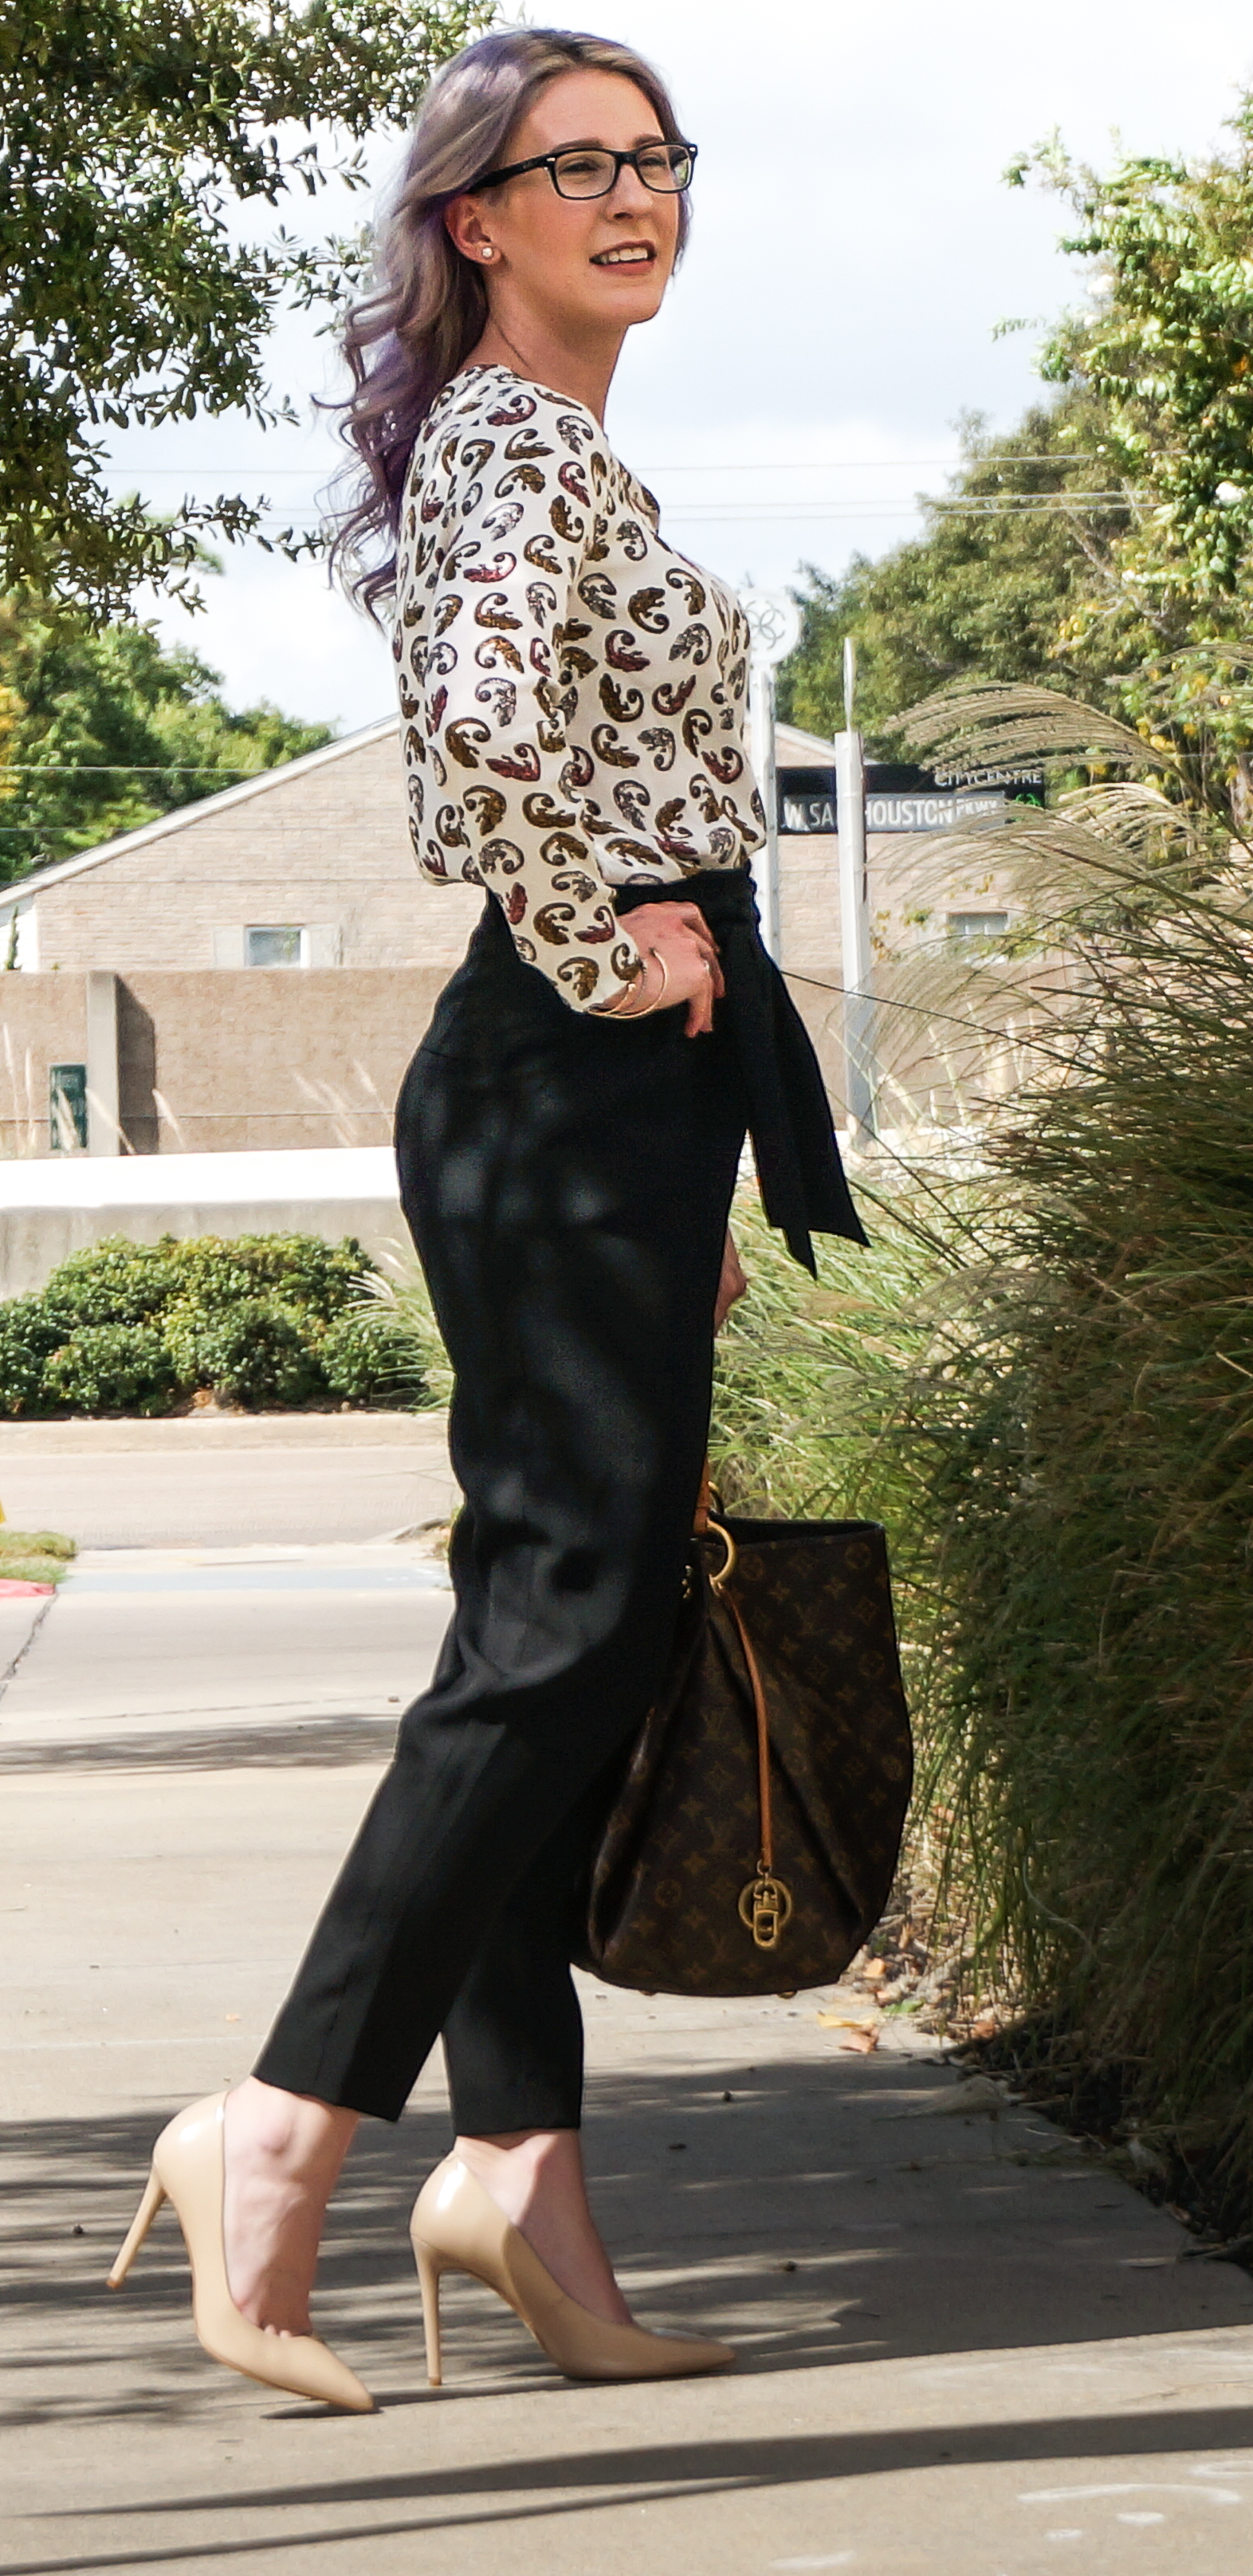 houston blogger, fashion blogger, style blogger, work wear, business casual,